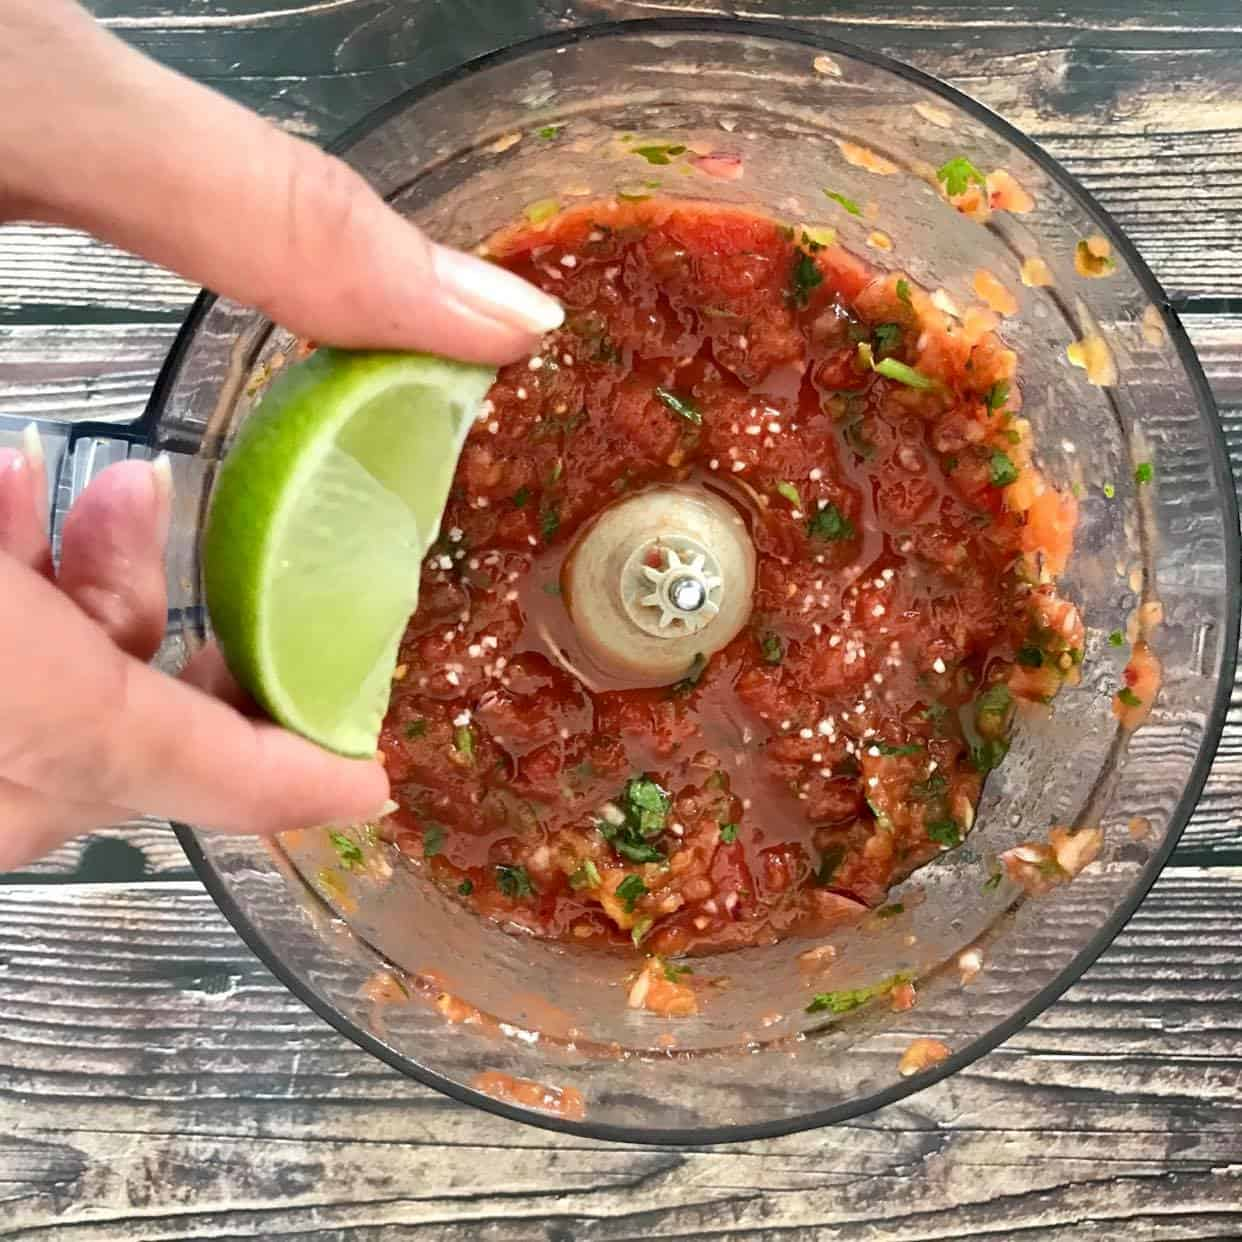 Restaurant Style Salsa blended with a hand squeezing lime juice over the top.